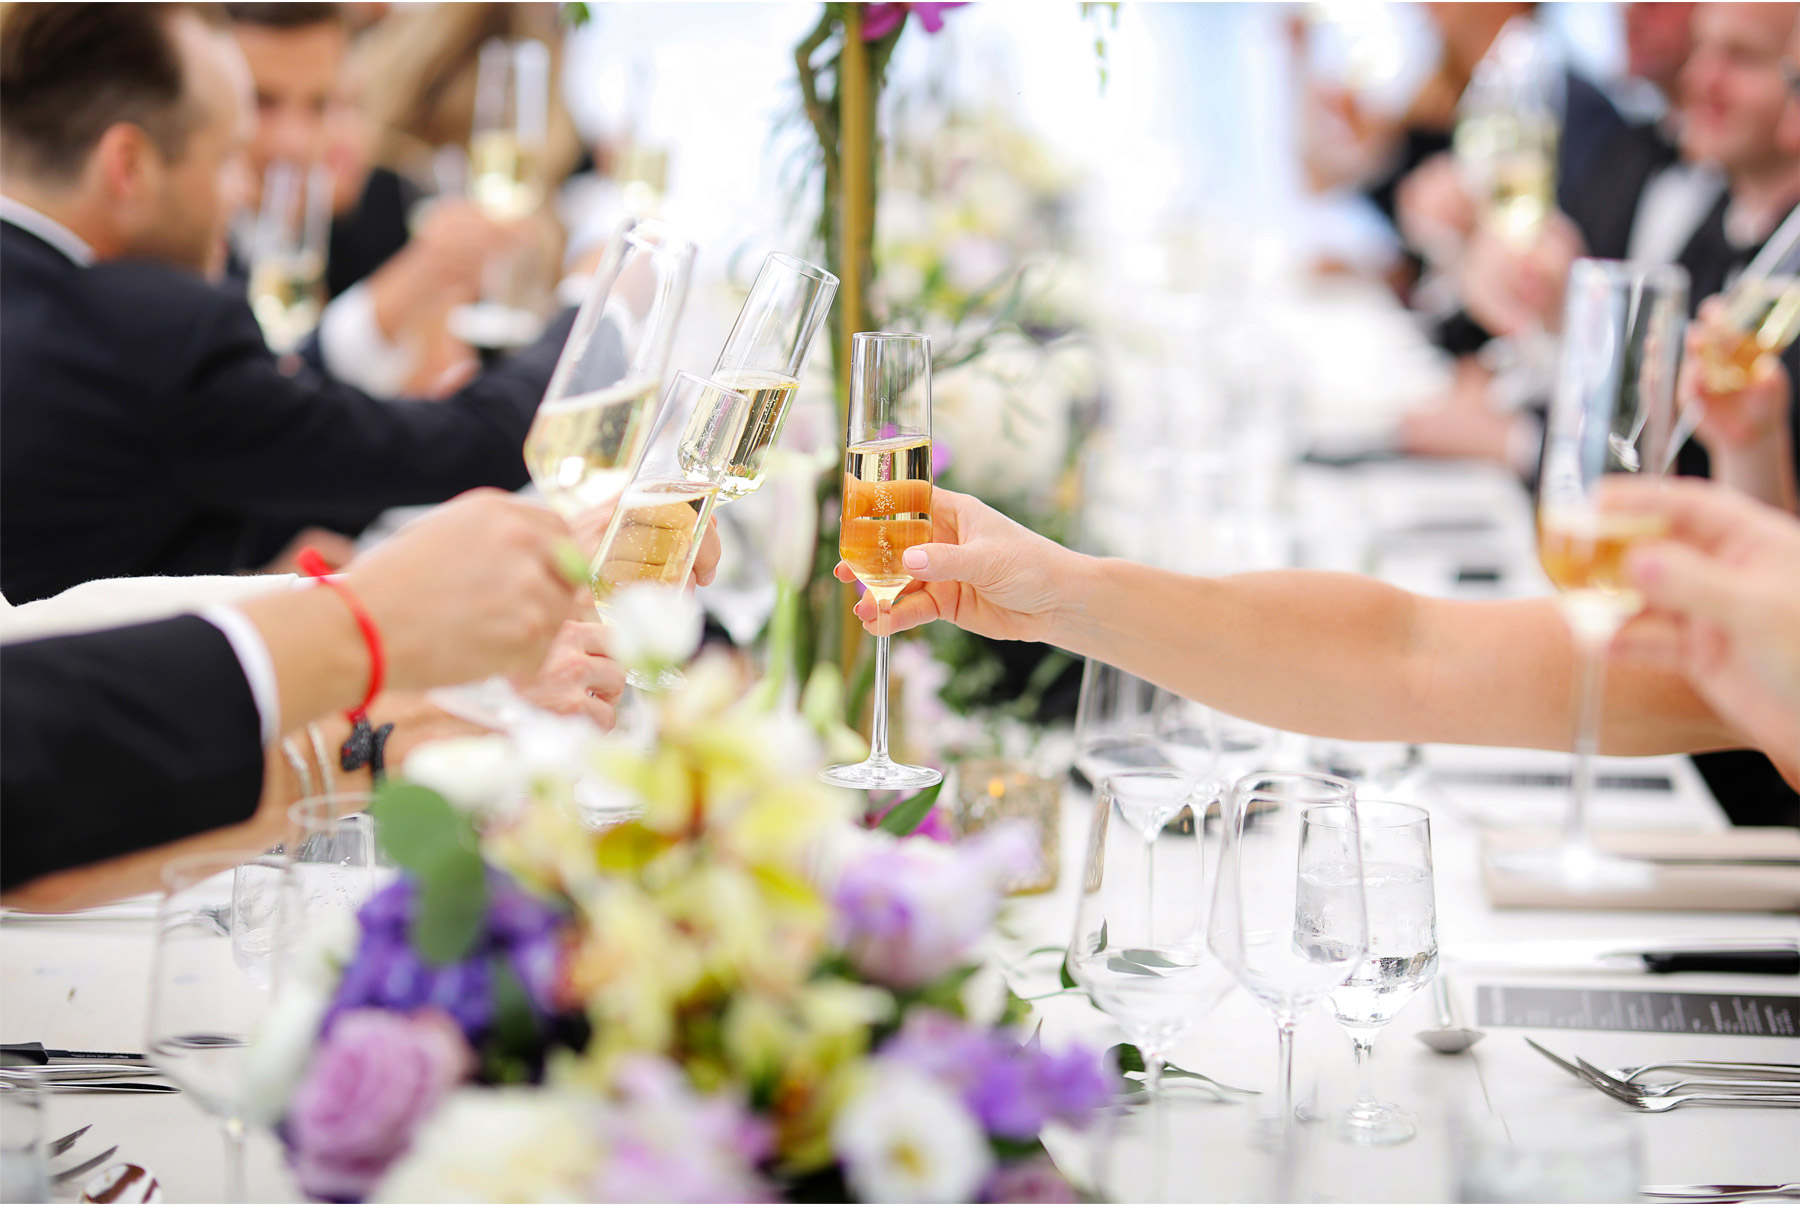 16-Vick-Photography-Wedding-Stouts-Island-Lodge-Wisconsin-Summer-Reception-Outdoor-Flowers-Toast-Cheers-MiJa-and-Lucius.jpg